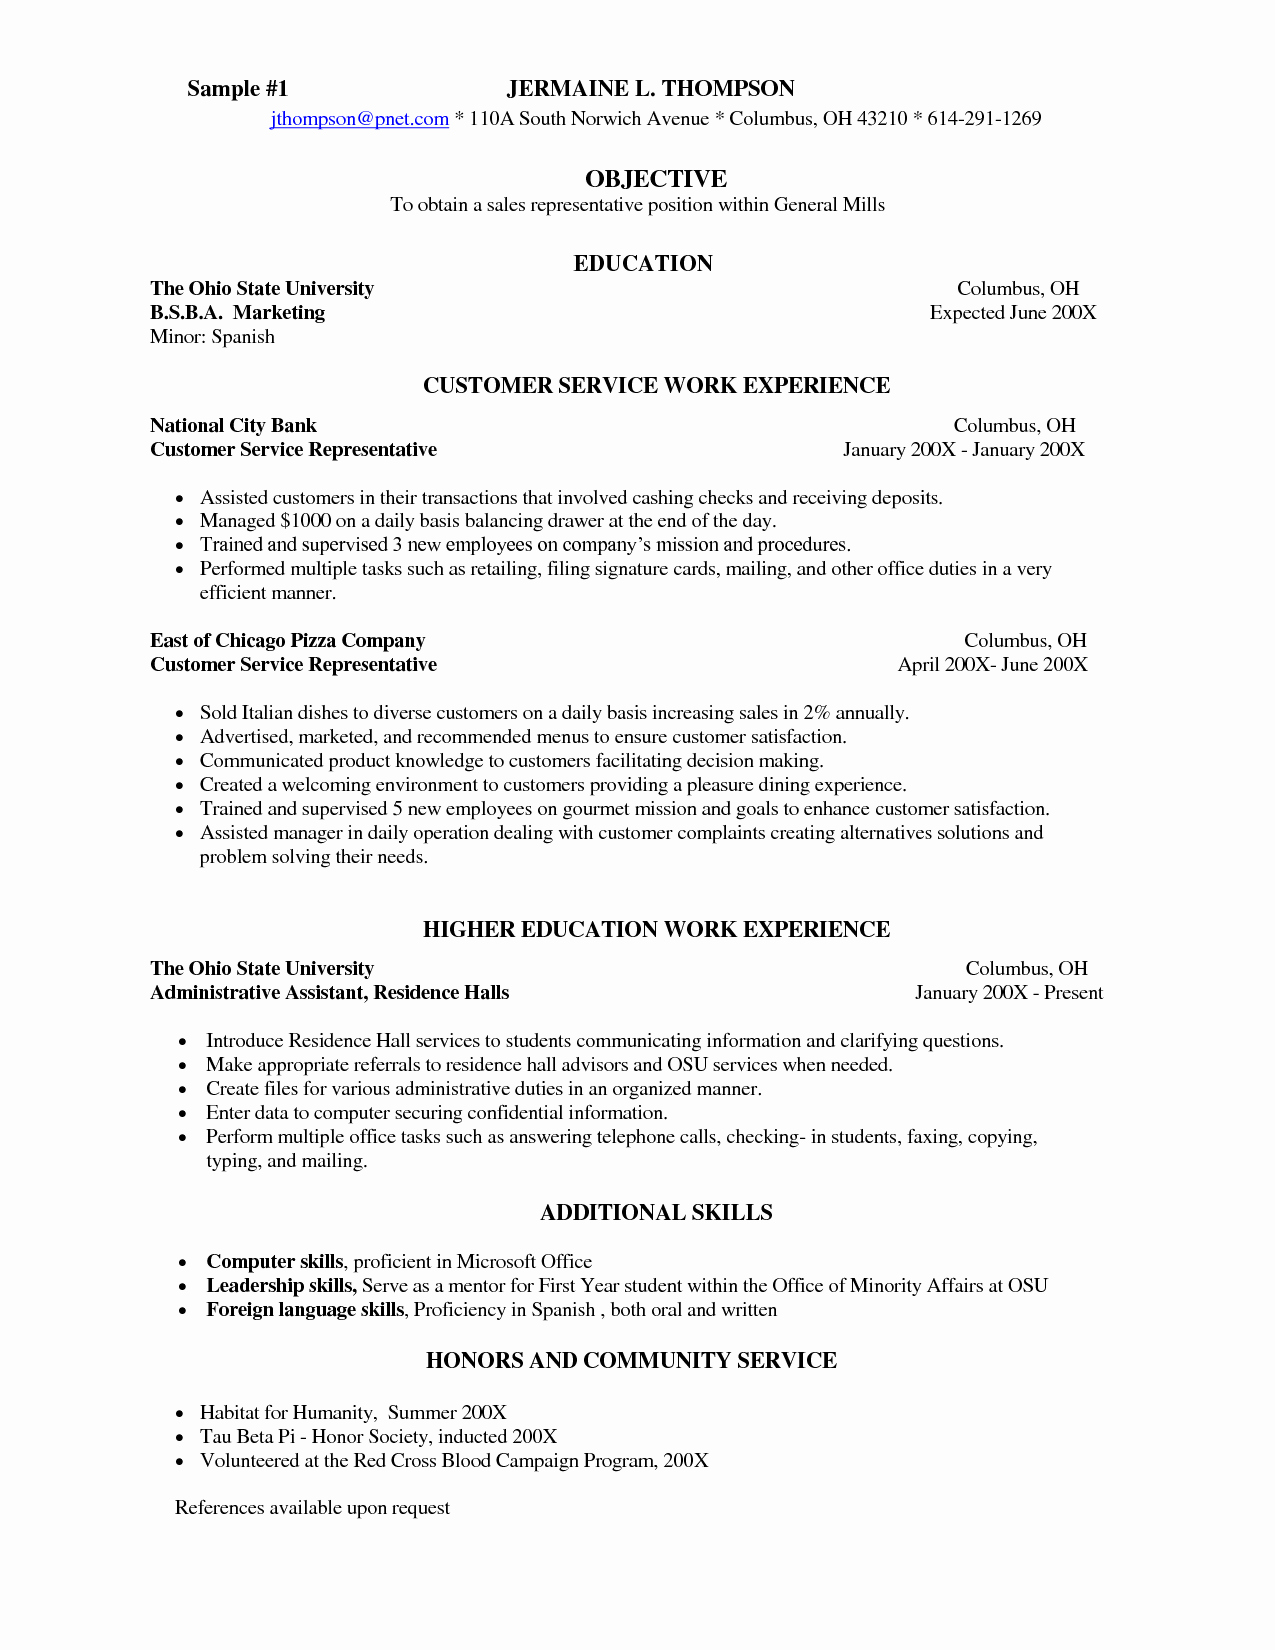 Sample Server Resume Templates Information Skills Template